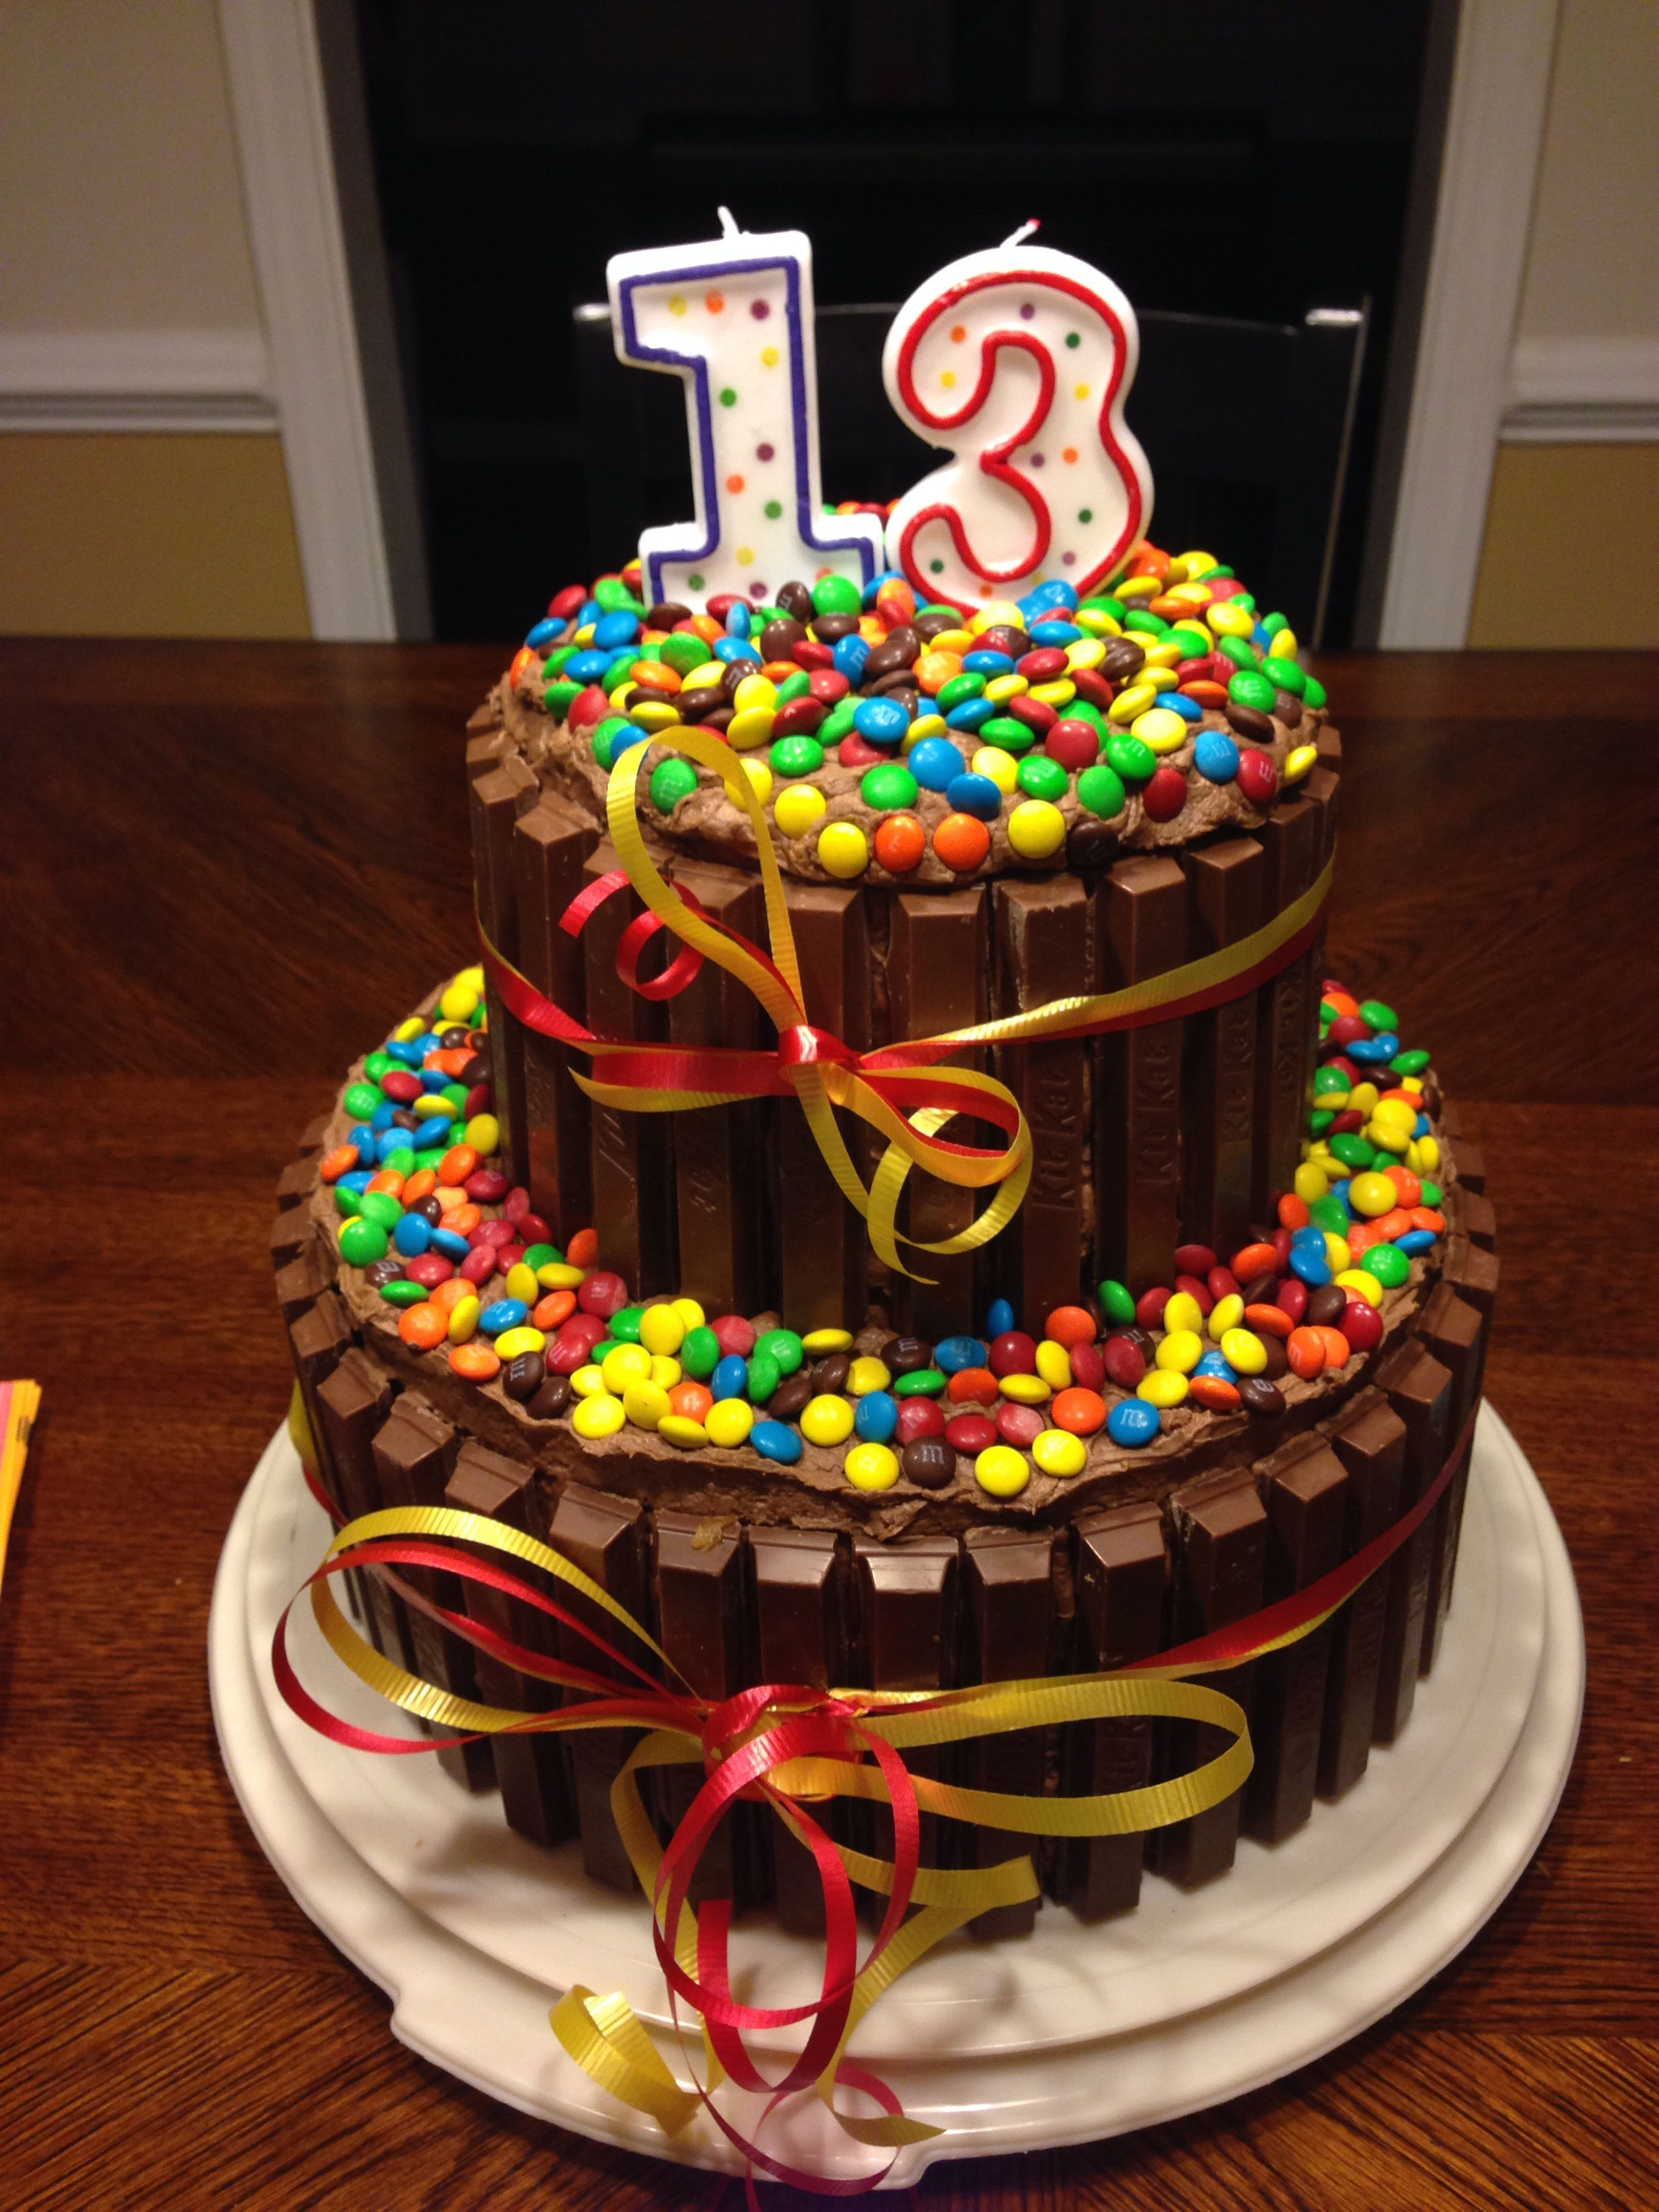 13 Year Old Boy Birthday Cake Ideas Decided To Try This For My Sons 13 Th Bday What Fun In 2020 Birthday Cakes For Teens 13th Birthday Cake For Girls 13 Birthday Cake